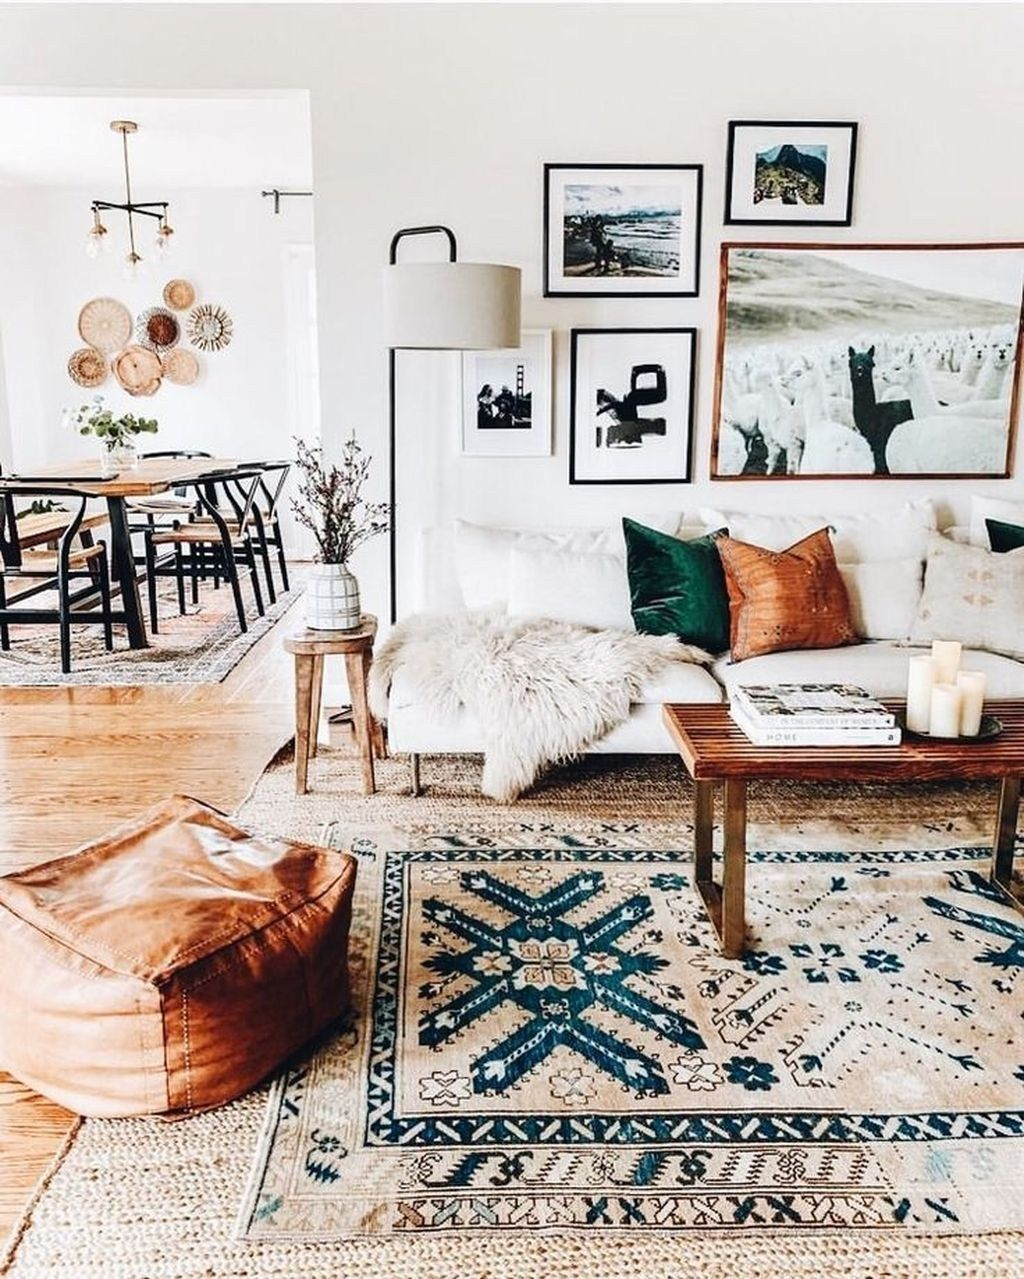 48 Amazing Bohemian Style Living Room Decor Ideas In 2020 Modern Boho Living Room Modern Bohemian Living Room Living Room Designs